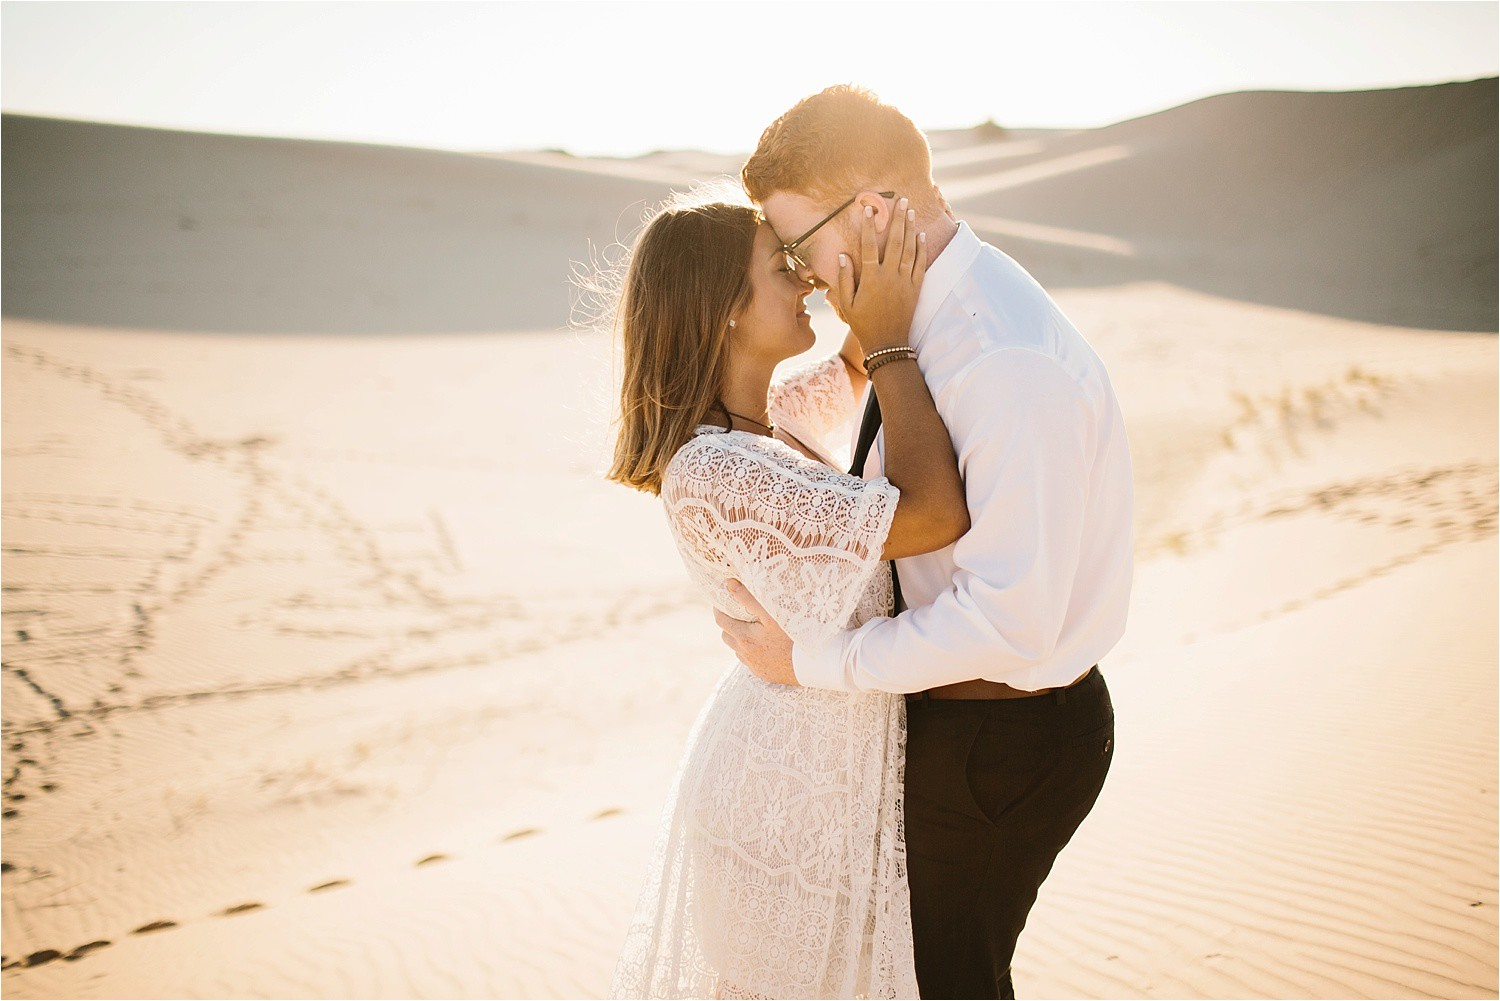 Lauren + Jacob __ a monahans sand dunes engagement session at sunrise by North Texas Wedding Photographer, Rachel Meagan Photography __ 33